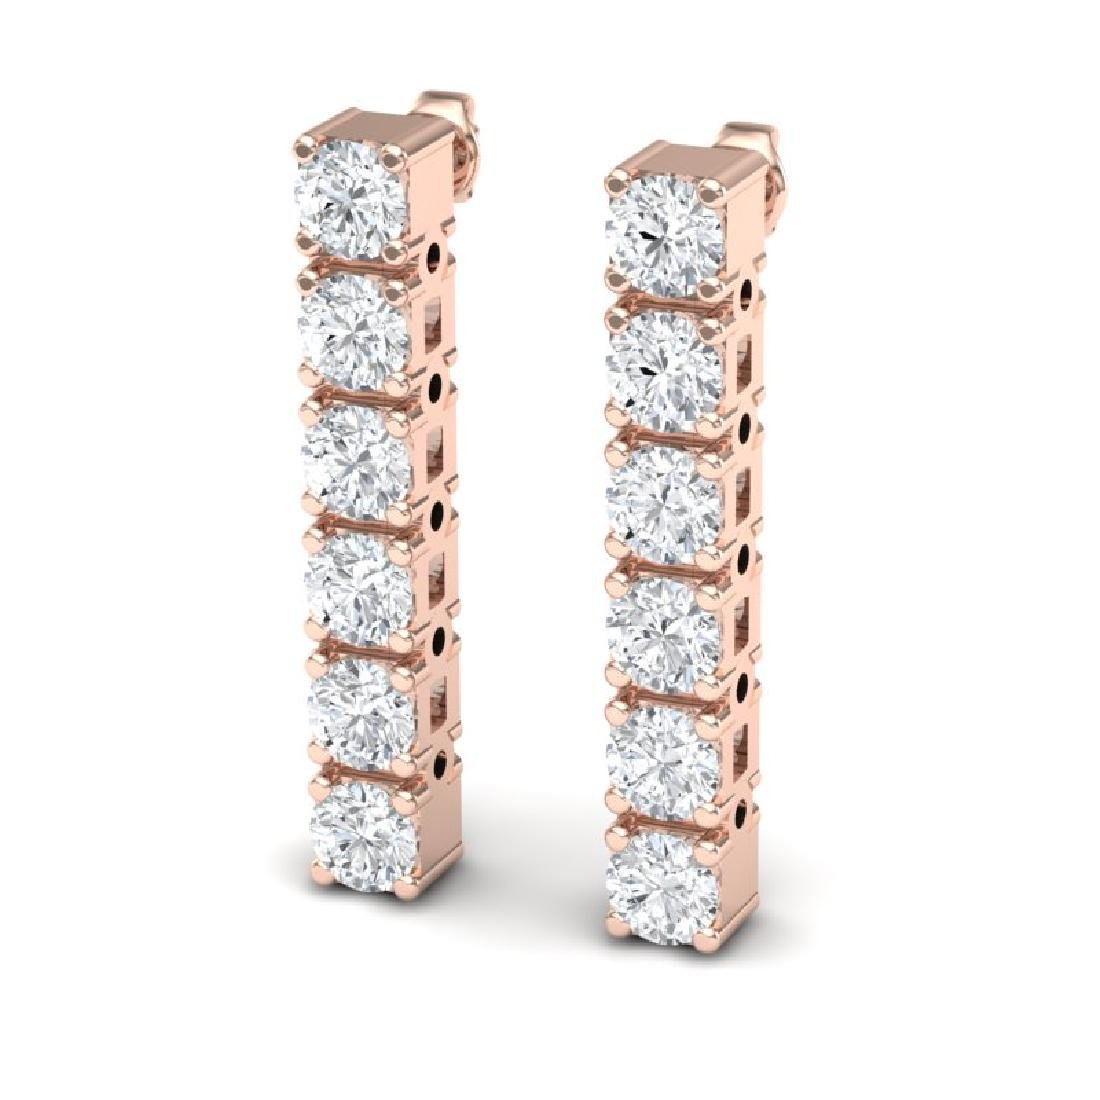 6 CTW Certified SI Diamond Earrings 18K Rose Gold - 2